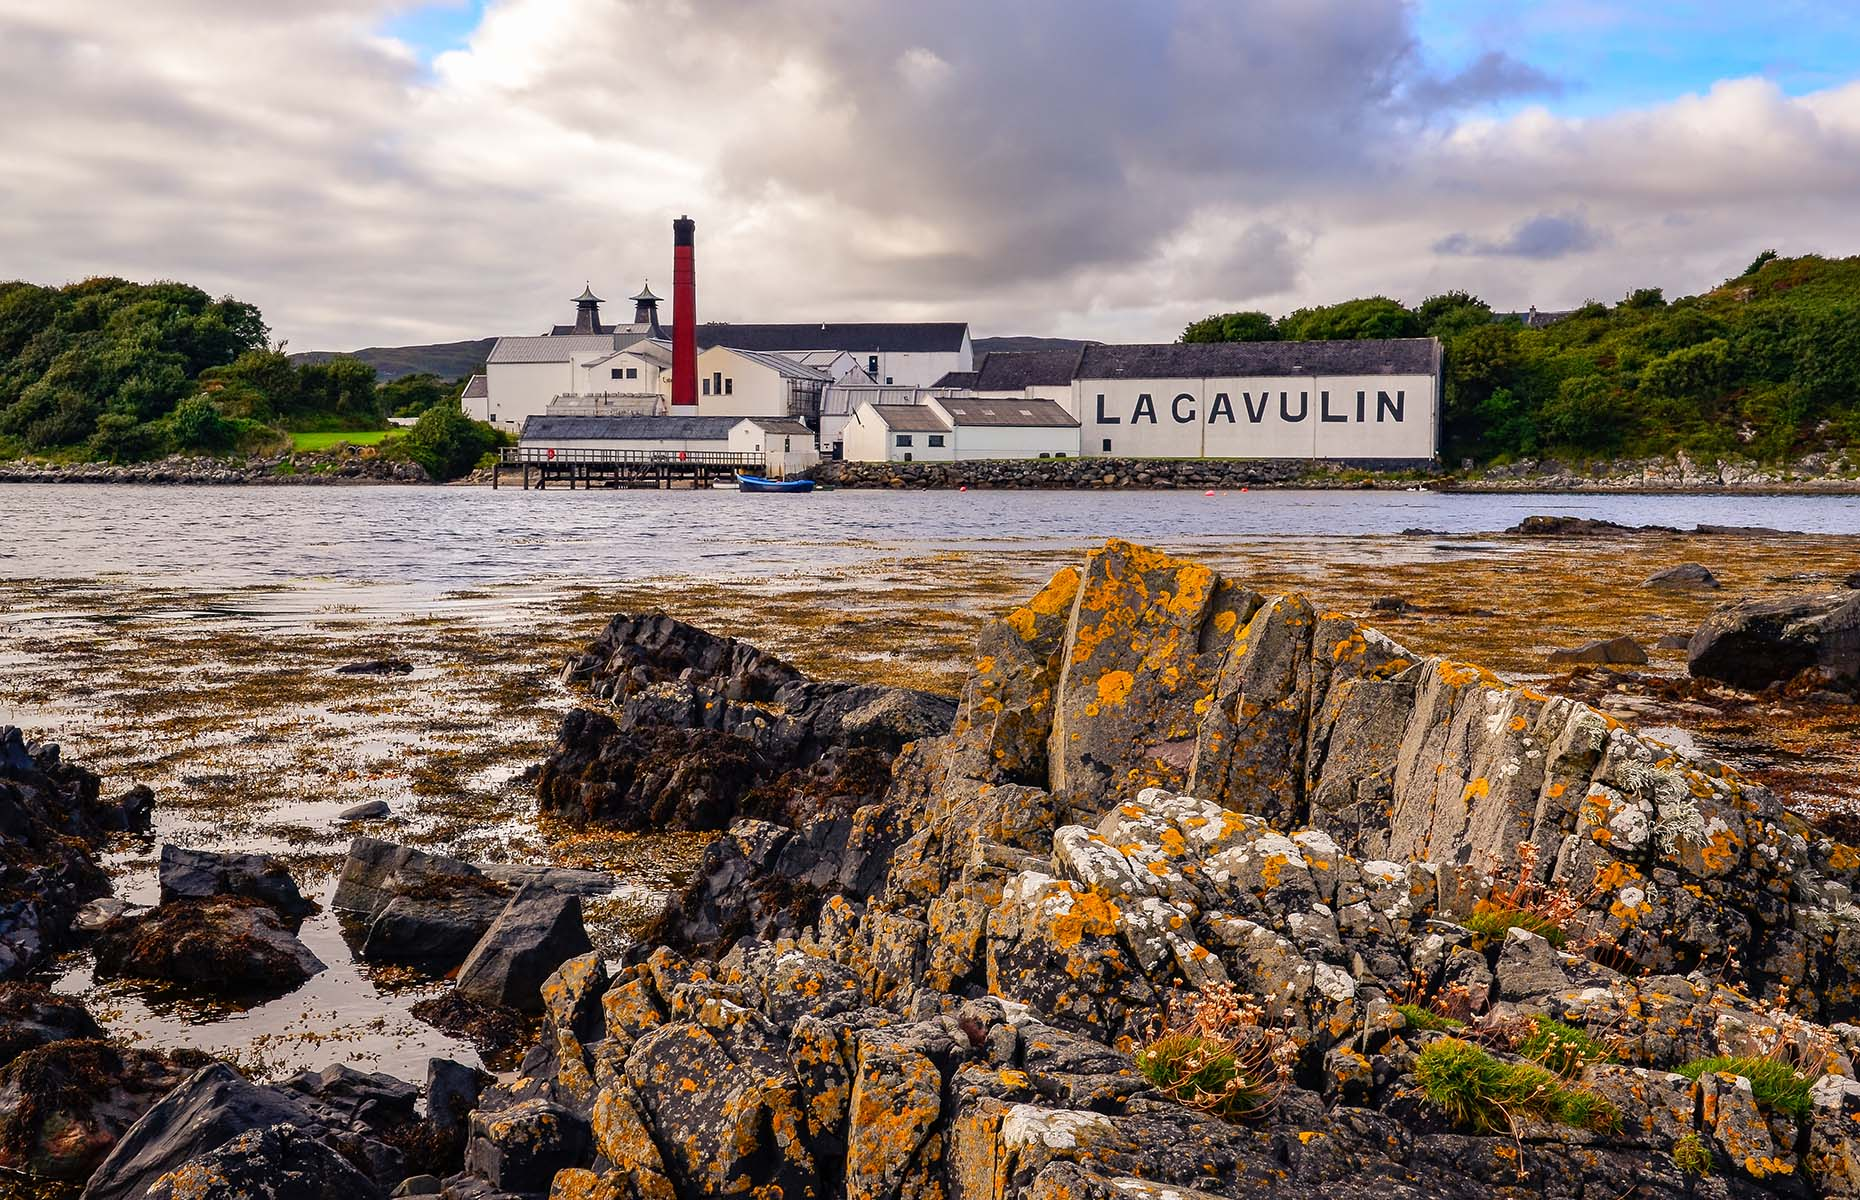 Lagavulin distillery on the Isle of Islay in Scotland (Image: Martin M303/Shutterstock)